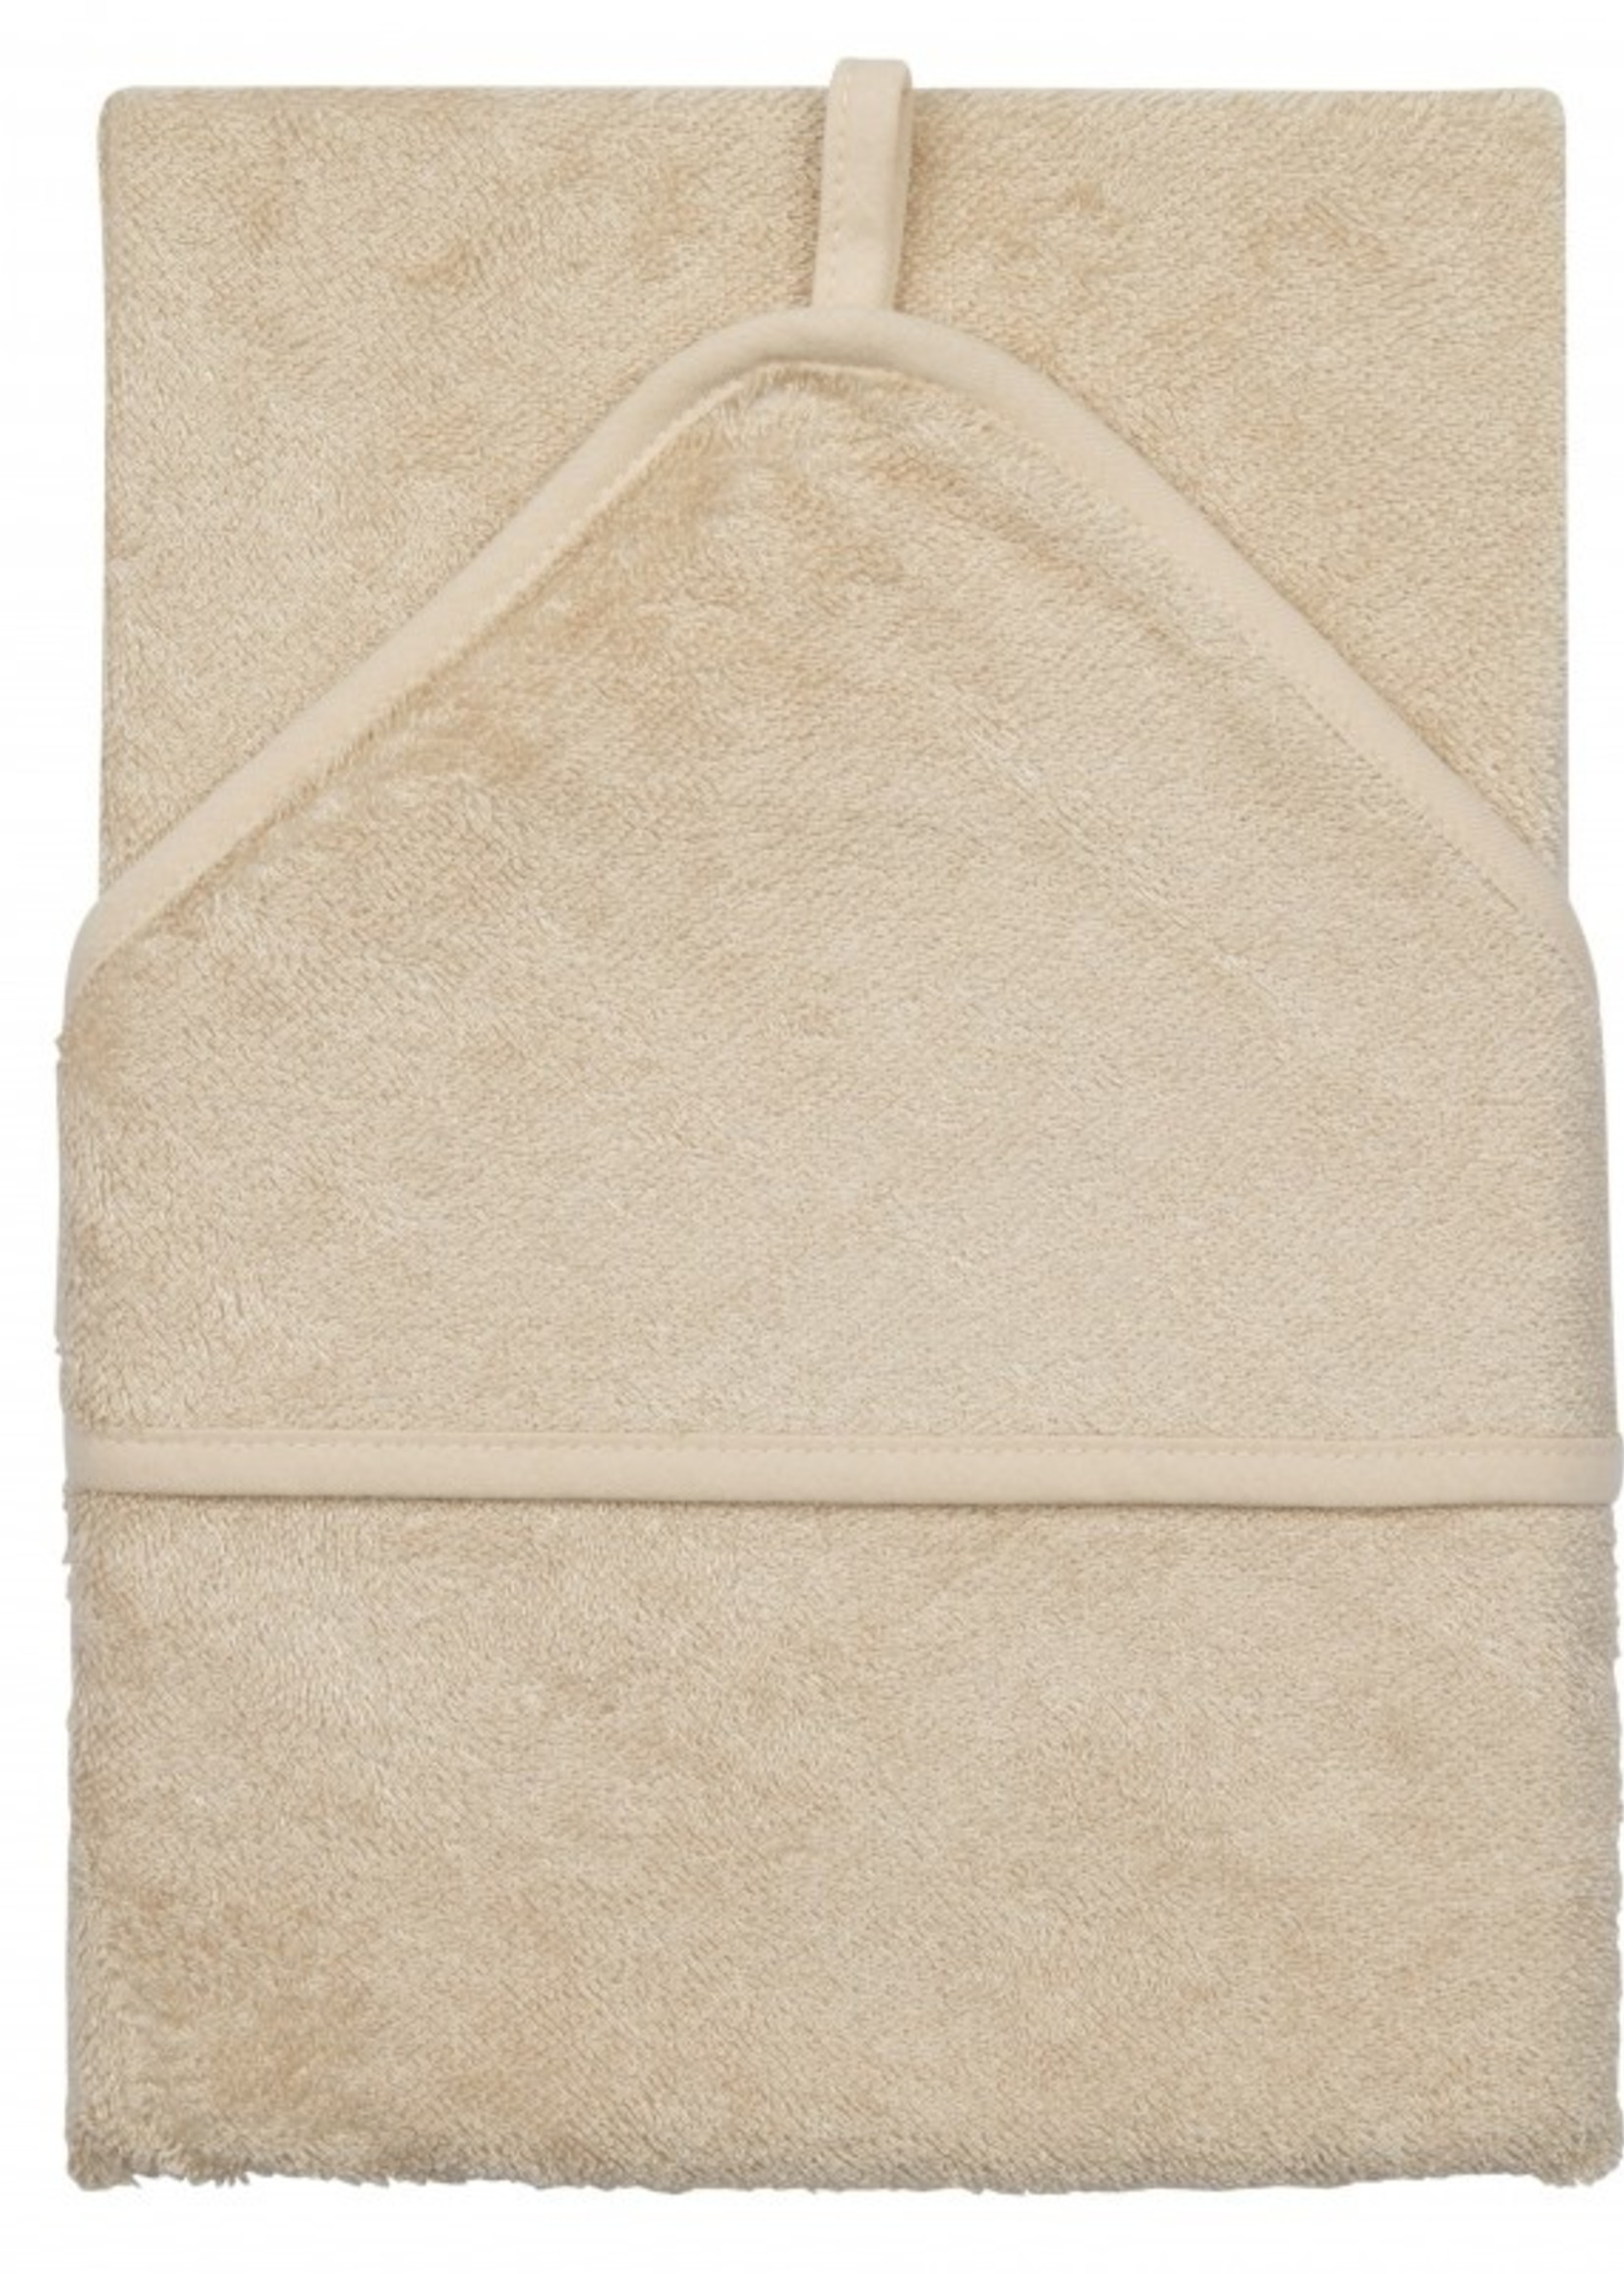 Timboo Hooded towel XL - Frosted Almond